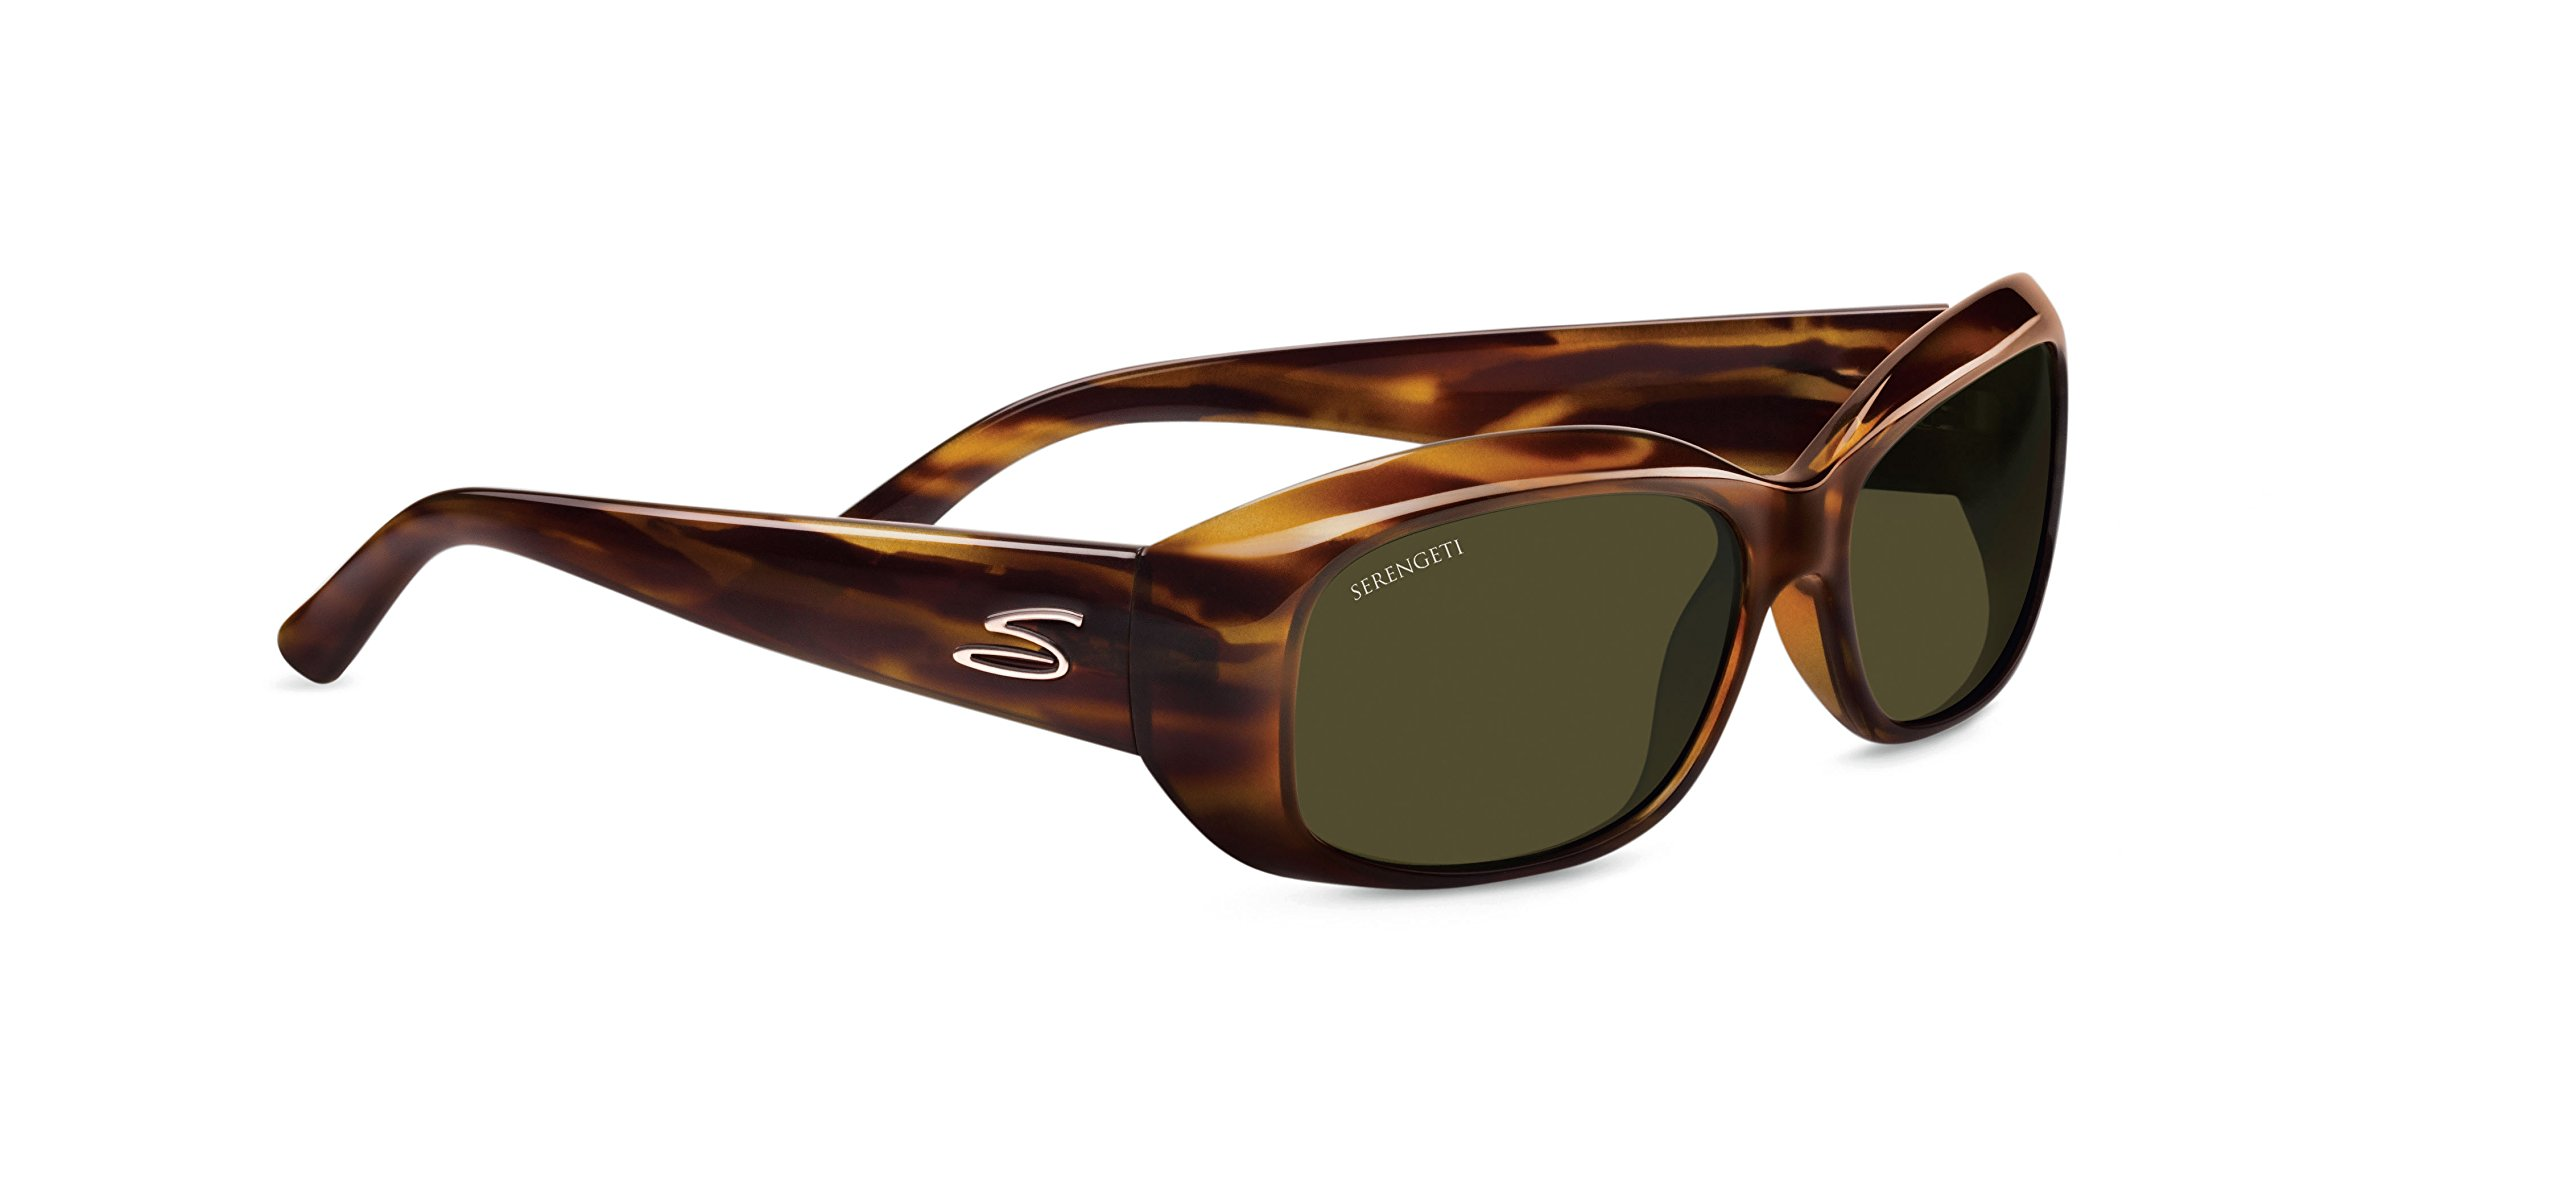 Serengeti RX Eyewear Bianca Sunglasses (Dark Stripe Tortoise, Polar 555 NM) by Serengeti